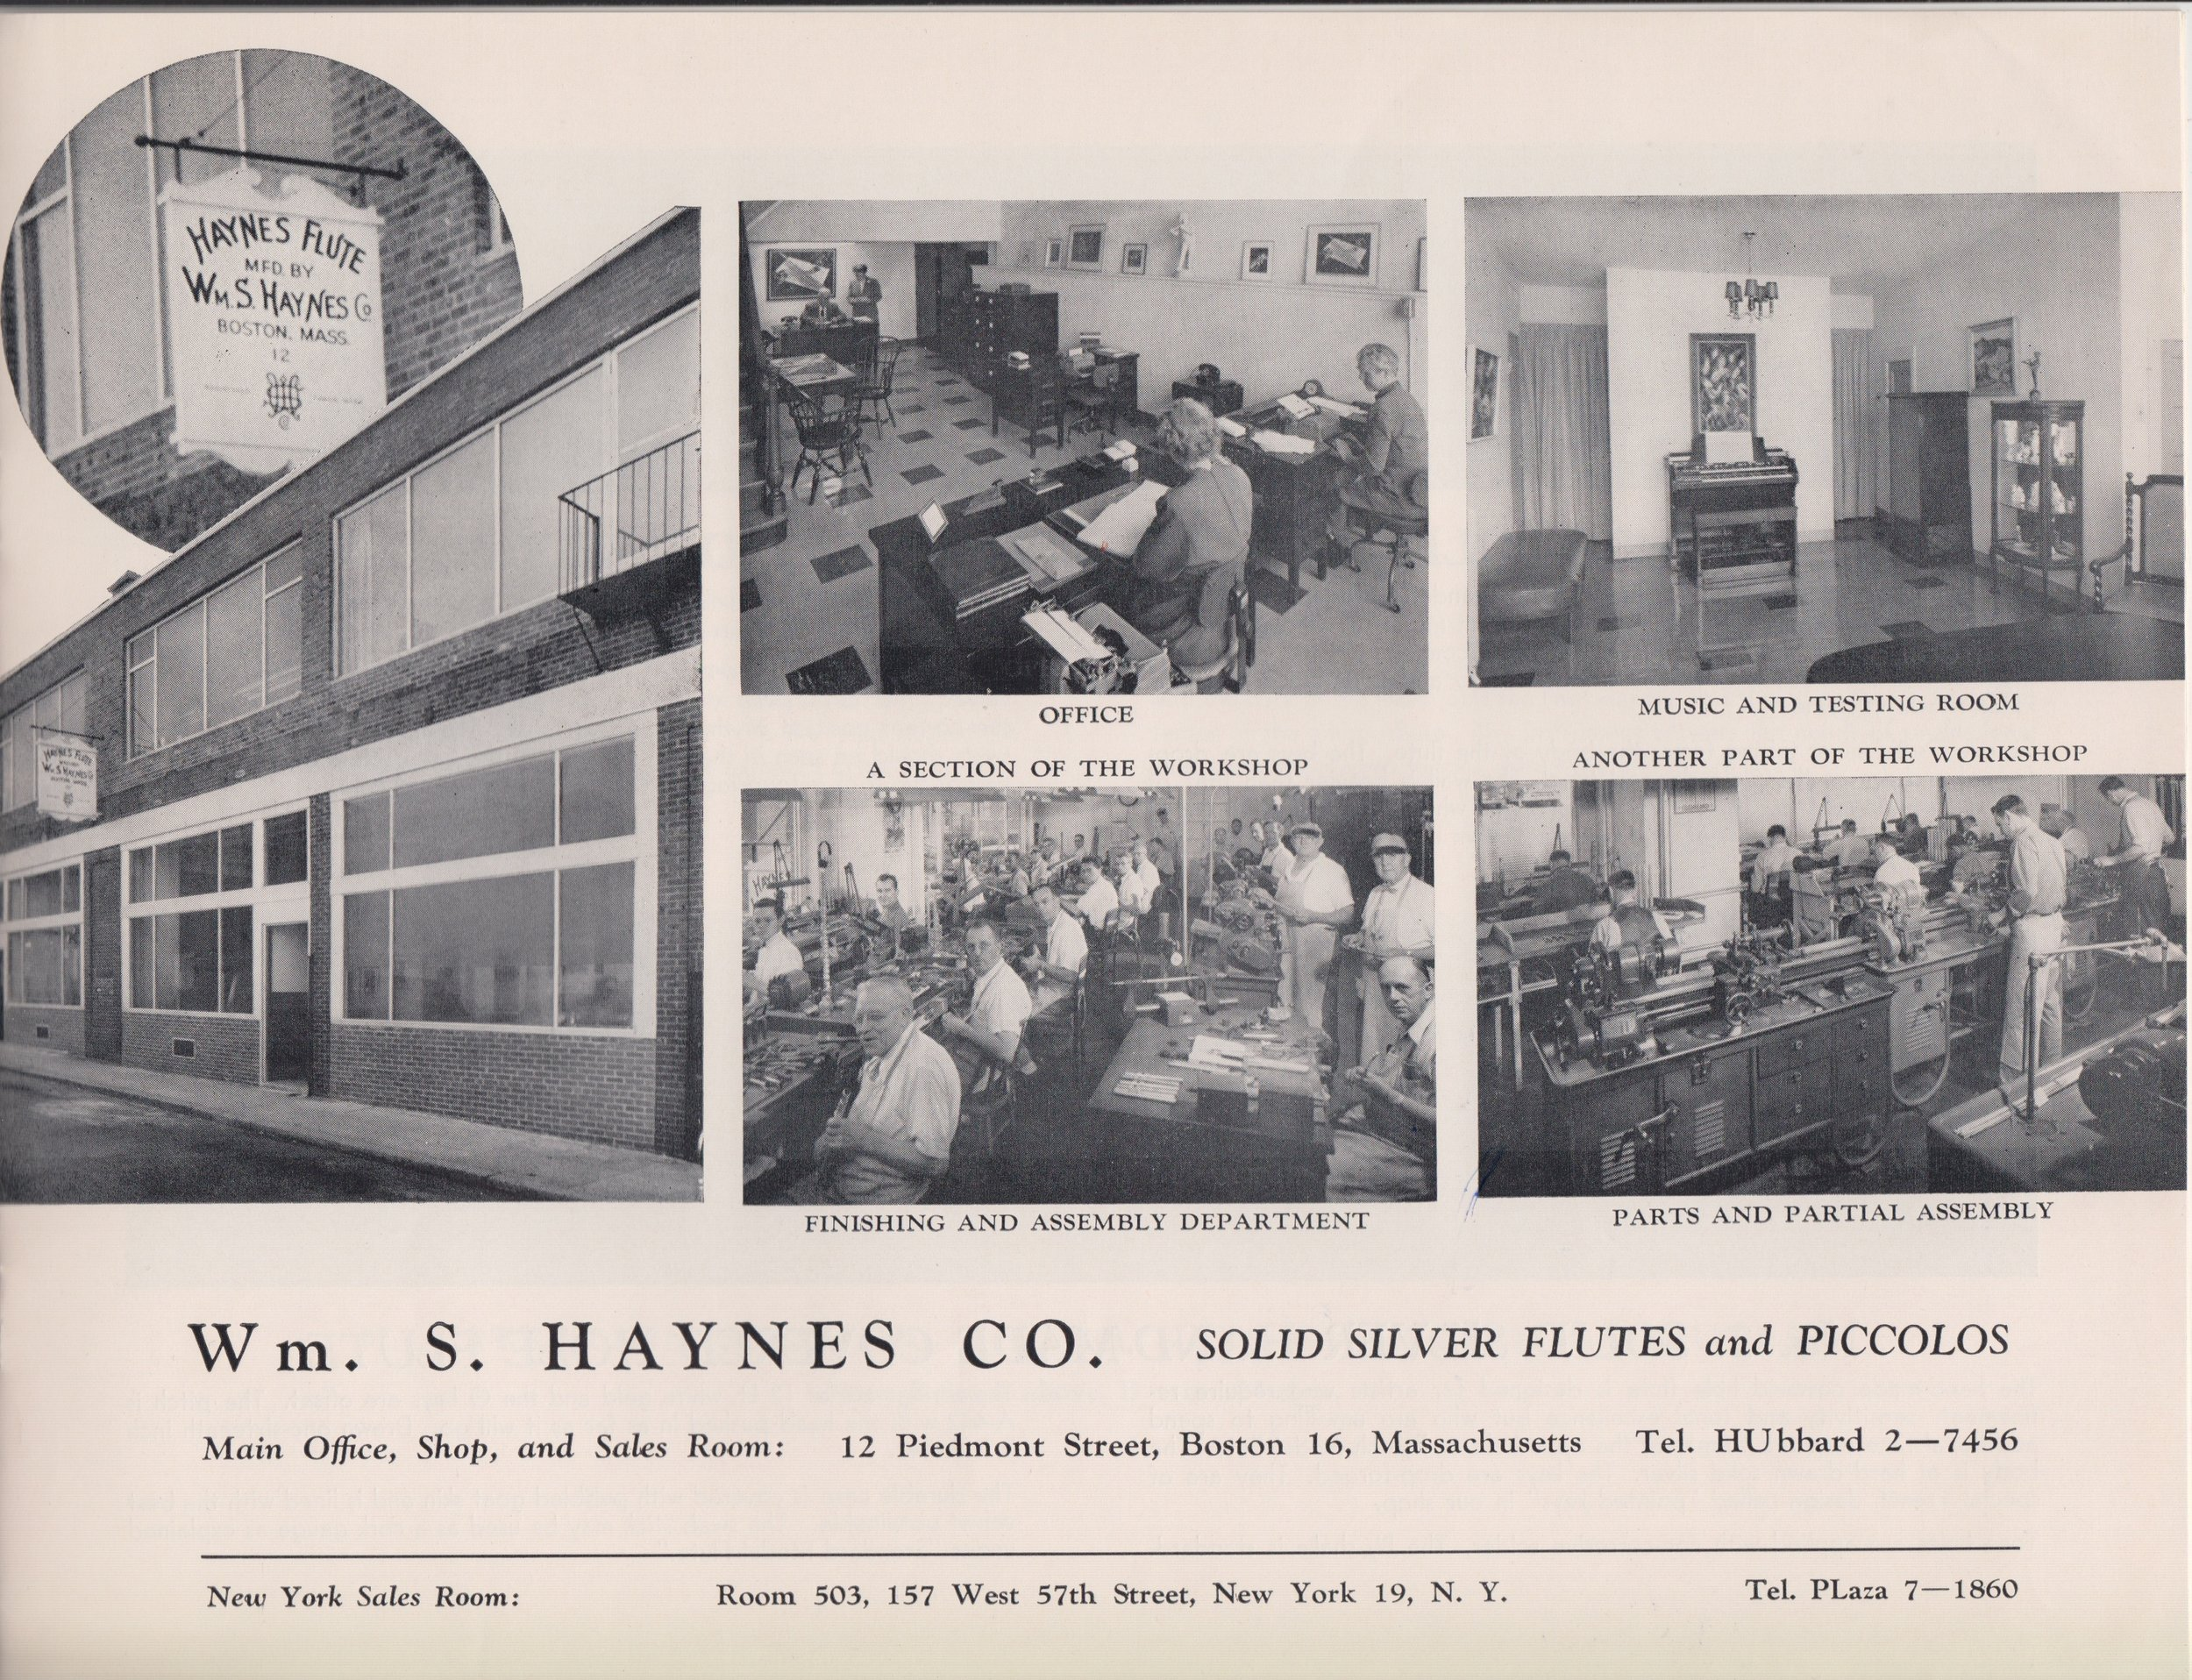 1960s - In the 1960s the Wm. S. Haynes Company averaged approximately 1,000 instruments per year. They made three styles of C flutes, the commercial model with drawn toneholes – with open or closed keys and